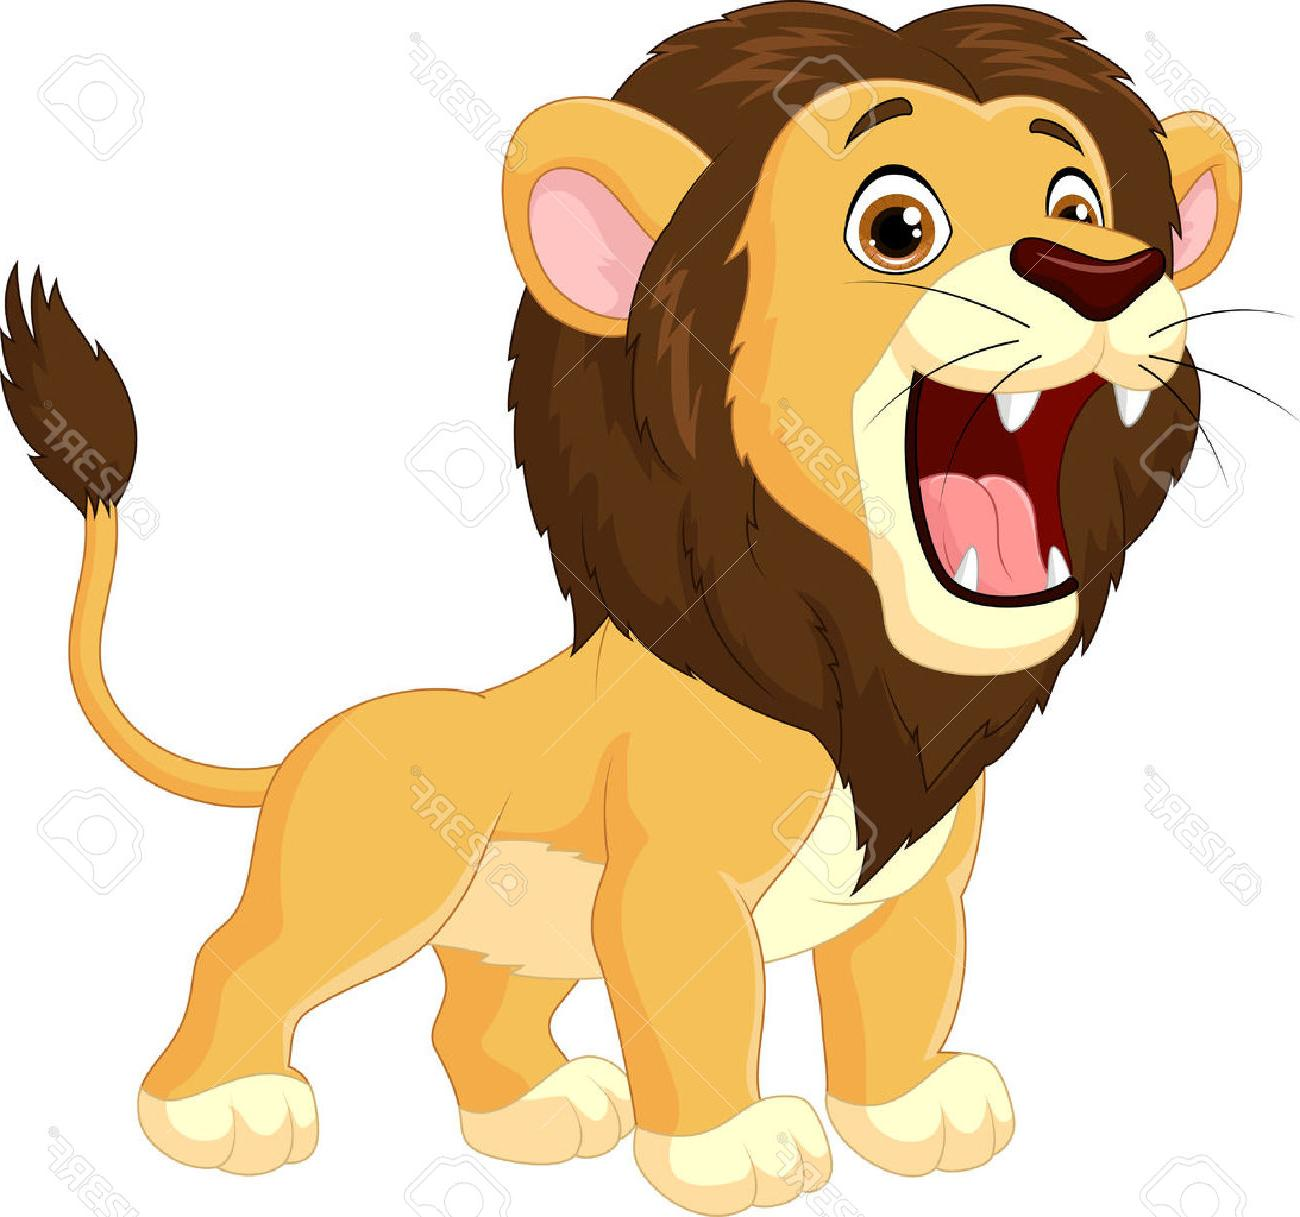 1300x1217 Best 15 Cartoon Lion Roaring Stock Vector Drawing Images